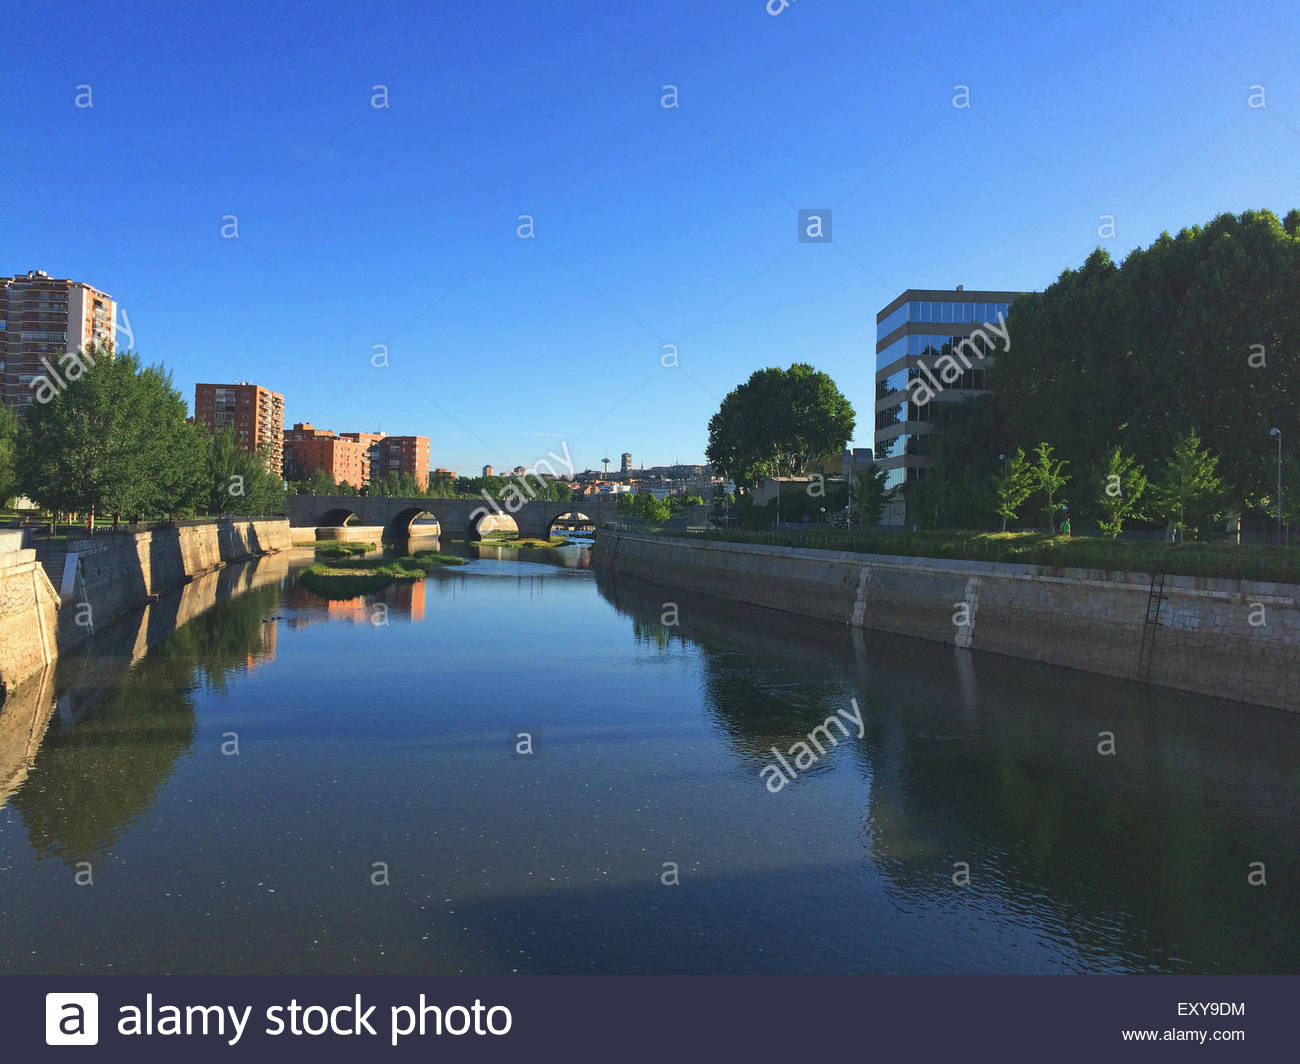 Segovia bridge over river Manzanares in the city of Madrid, Spain Stock Photo